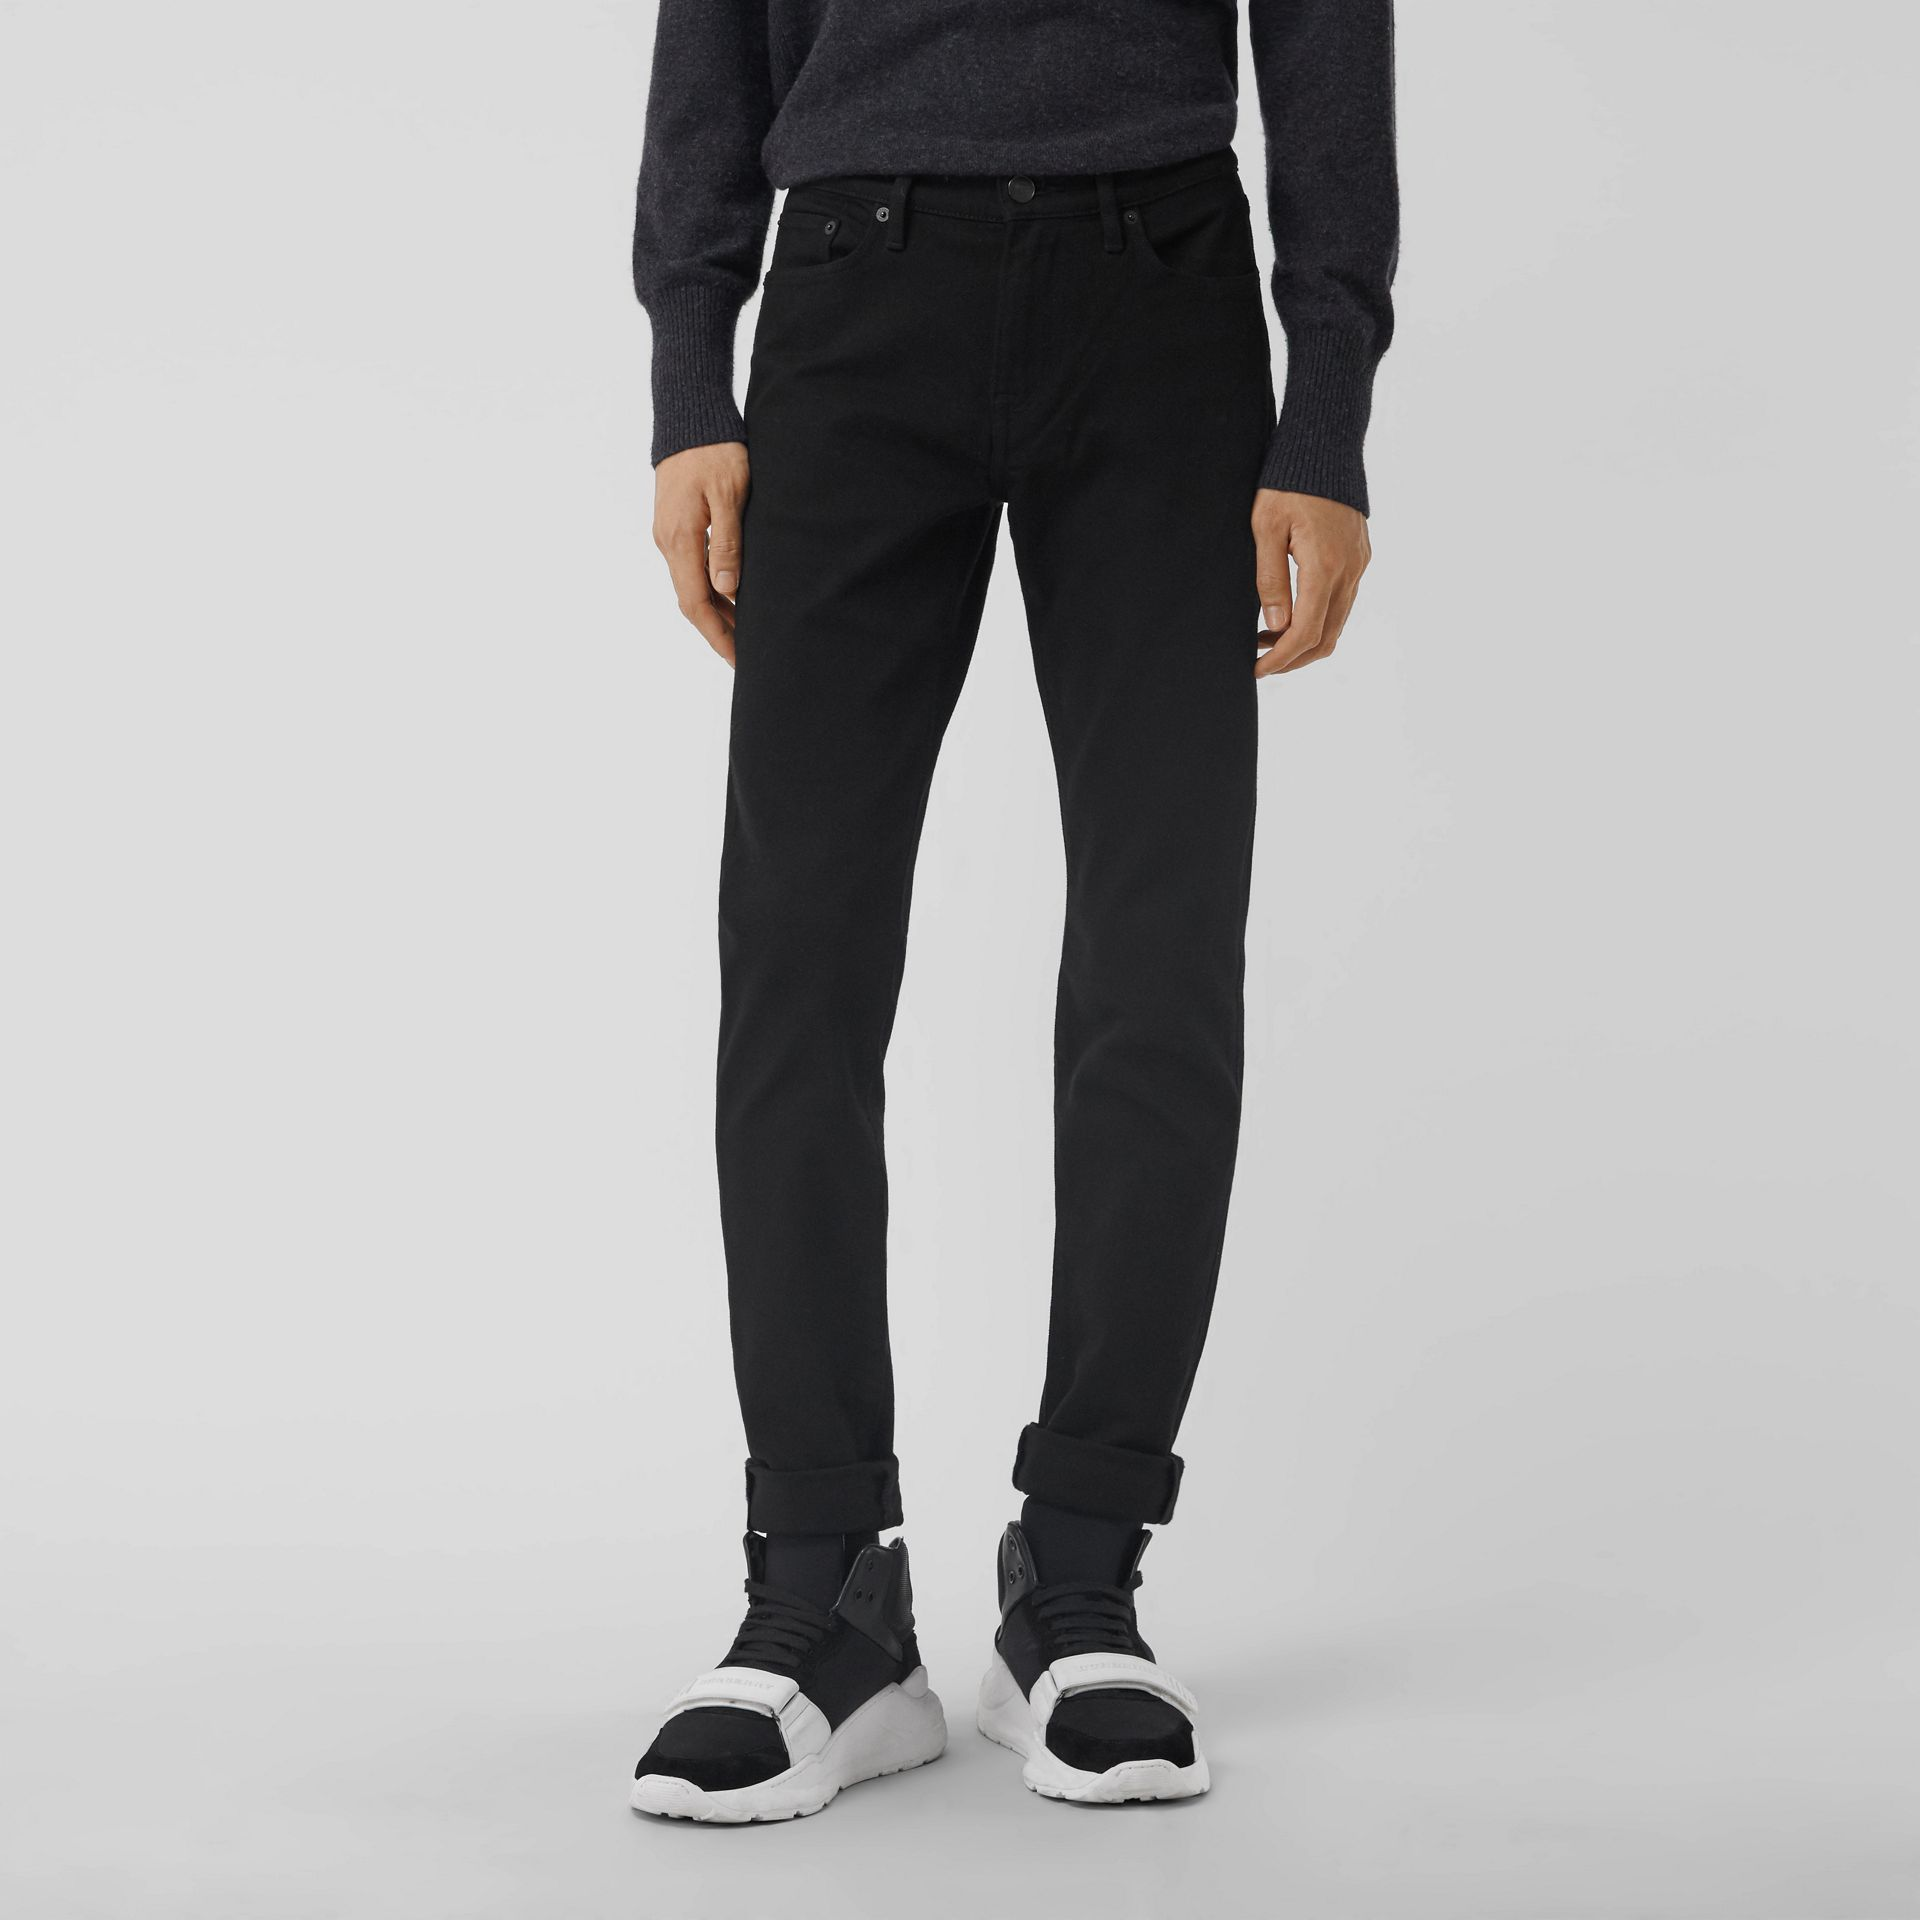 Jean denim extensible de coupe étroite (Noir) - Homme | Burberry - photo de la galerie 4